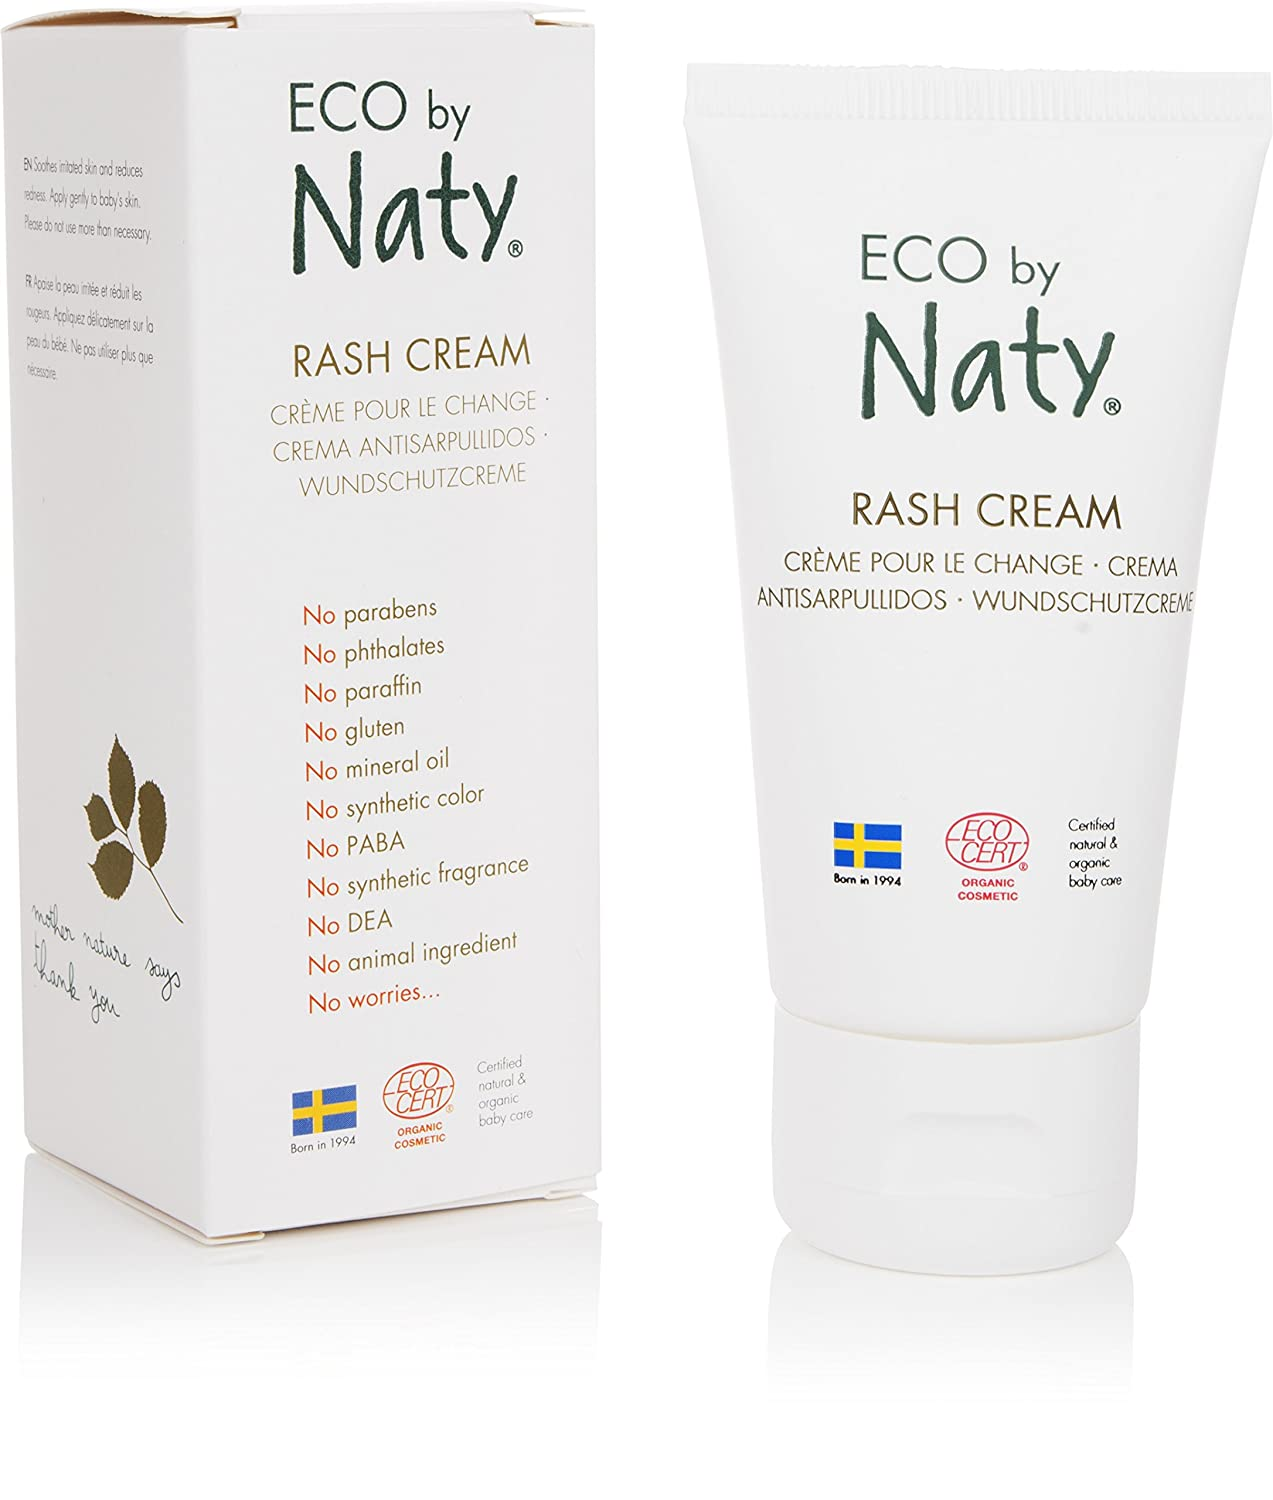 ECO by Naty Organic Baby Rash Cream, 1.7 Fl. Ounce NAUJA 07330933252614